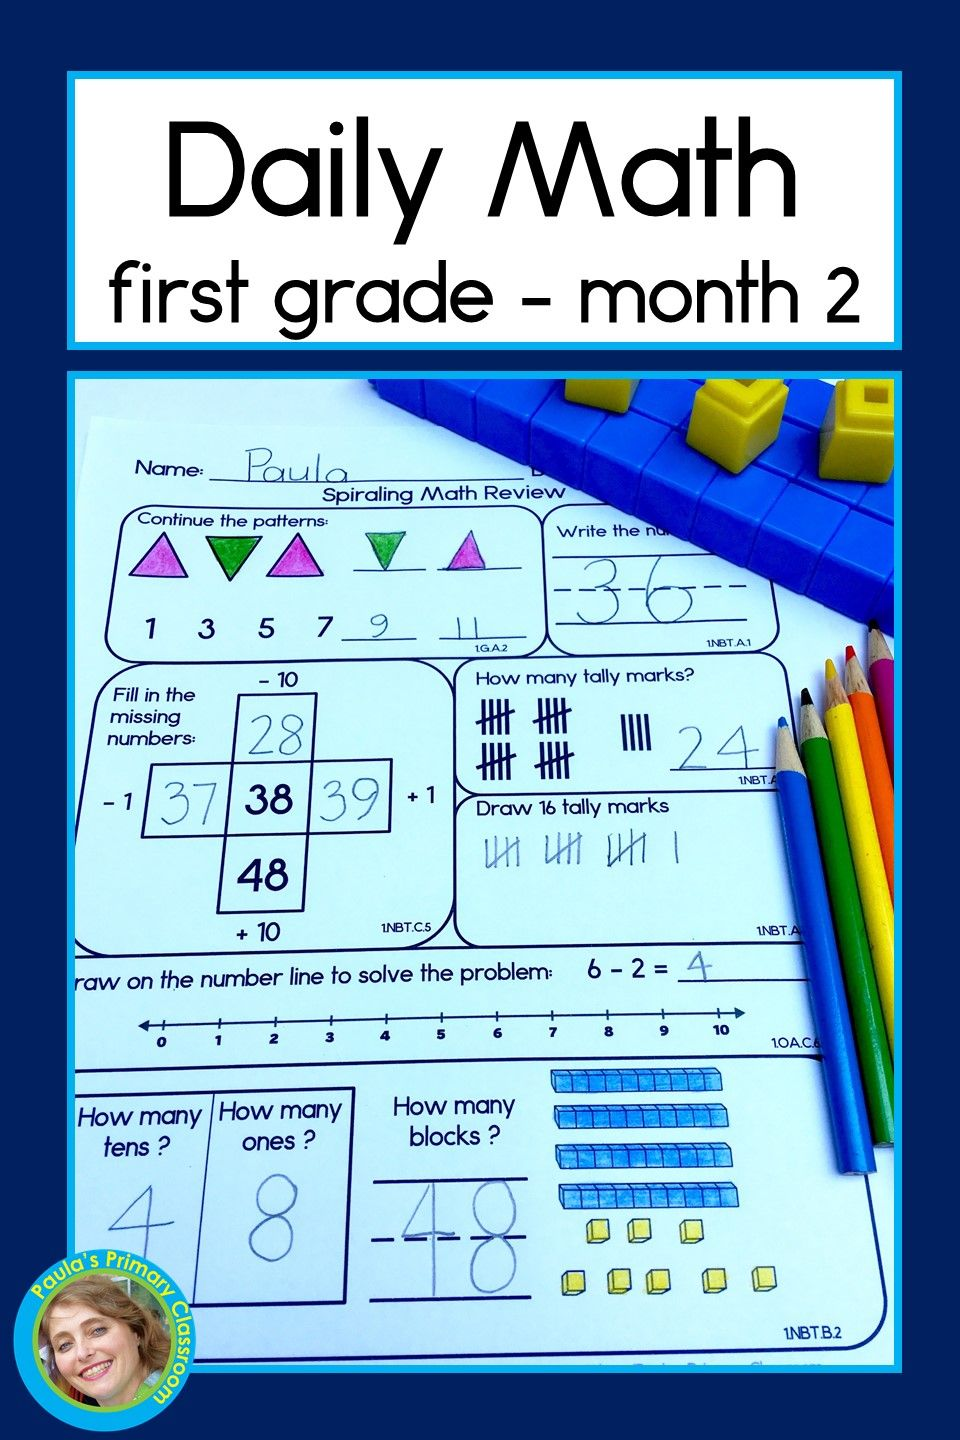 This Is Perfect For First Grade Morning Work It S No Prep Covers So Many Math Skills And Is Even Common Core Aligned I Love The Daily Math First Grade Math [ 1440 x 960 Pixel ]